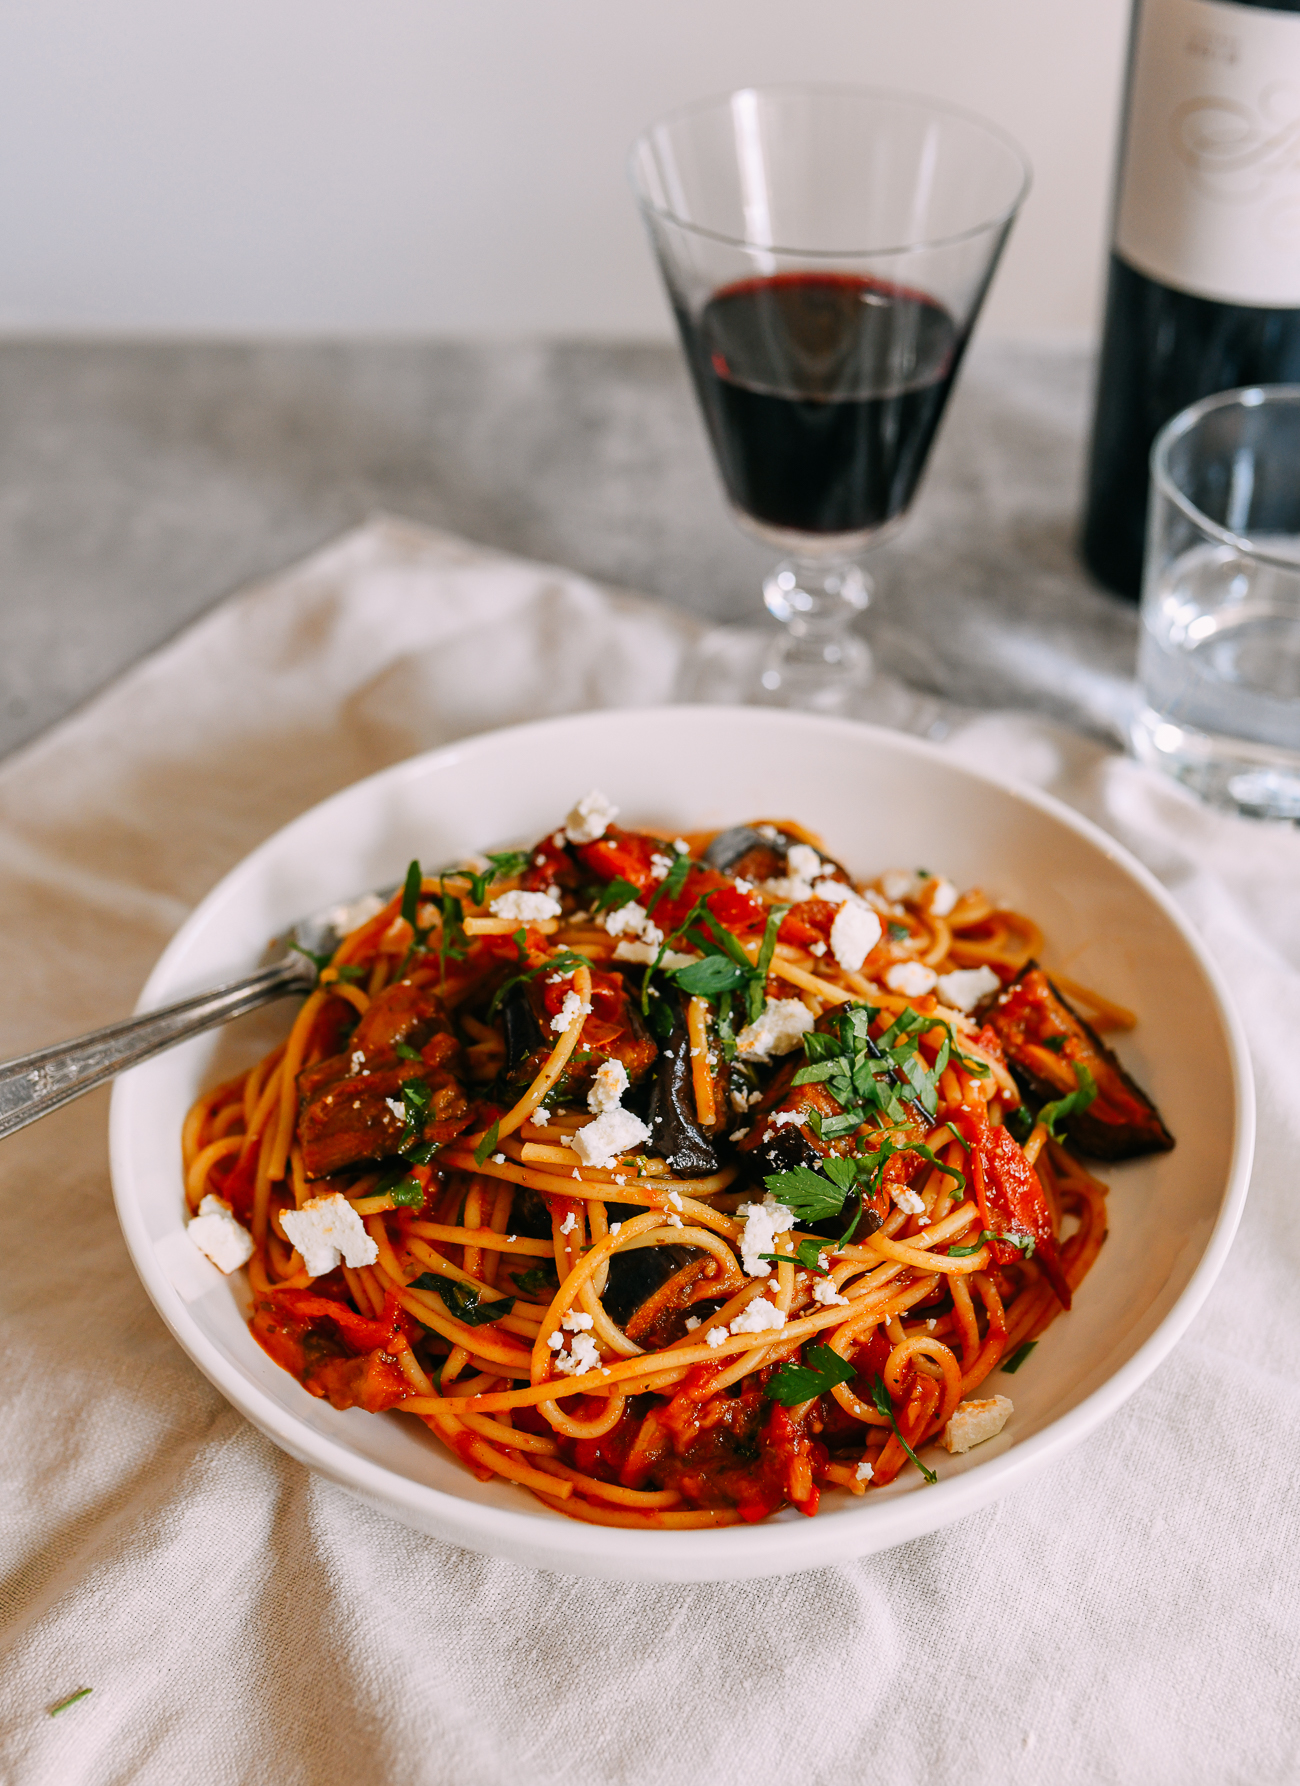 Pasta alla norma served with red wine